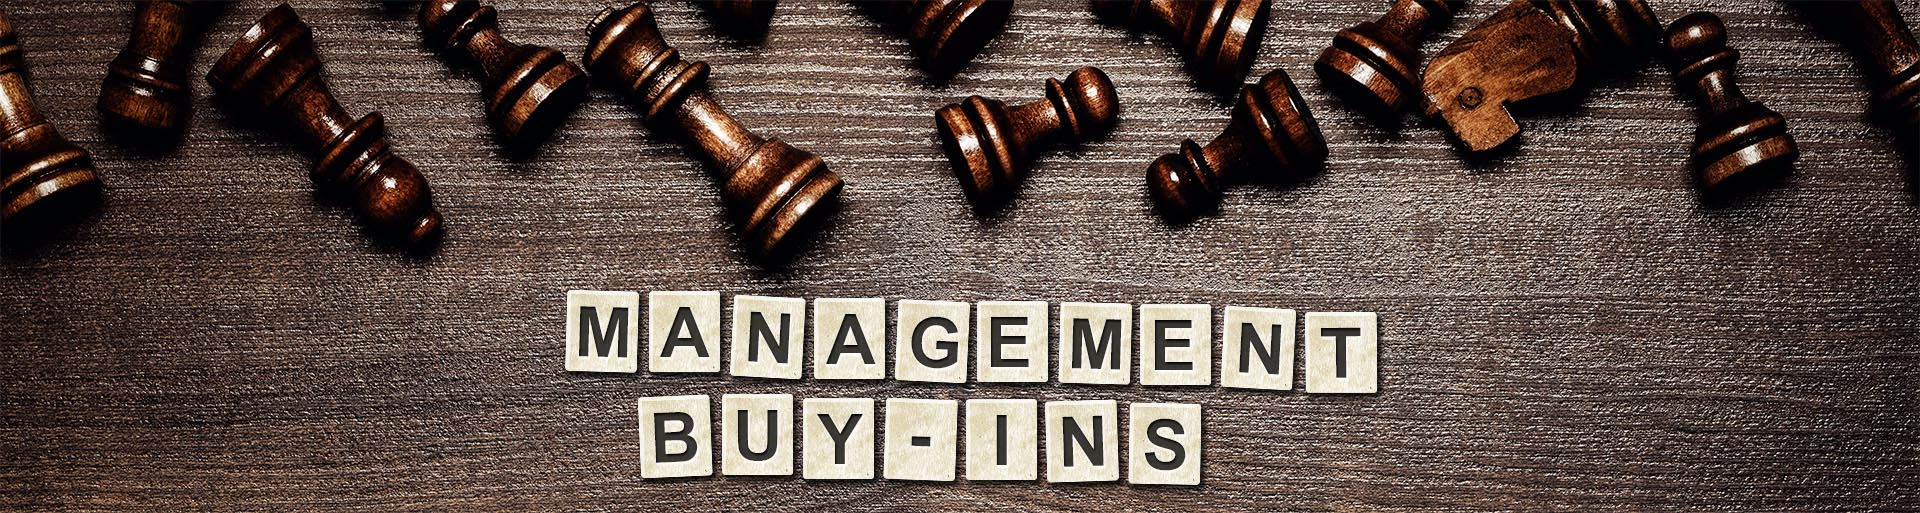 Management Buy-Ins